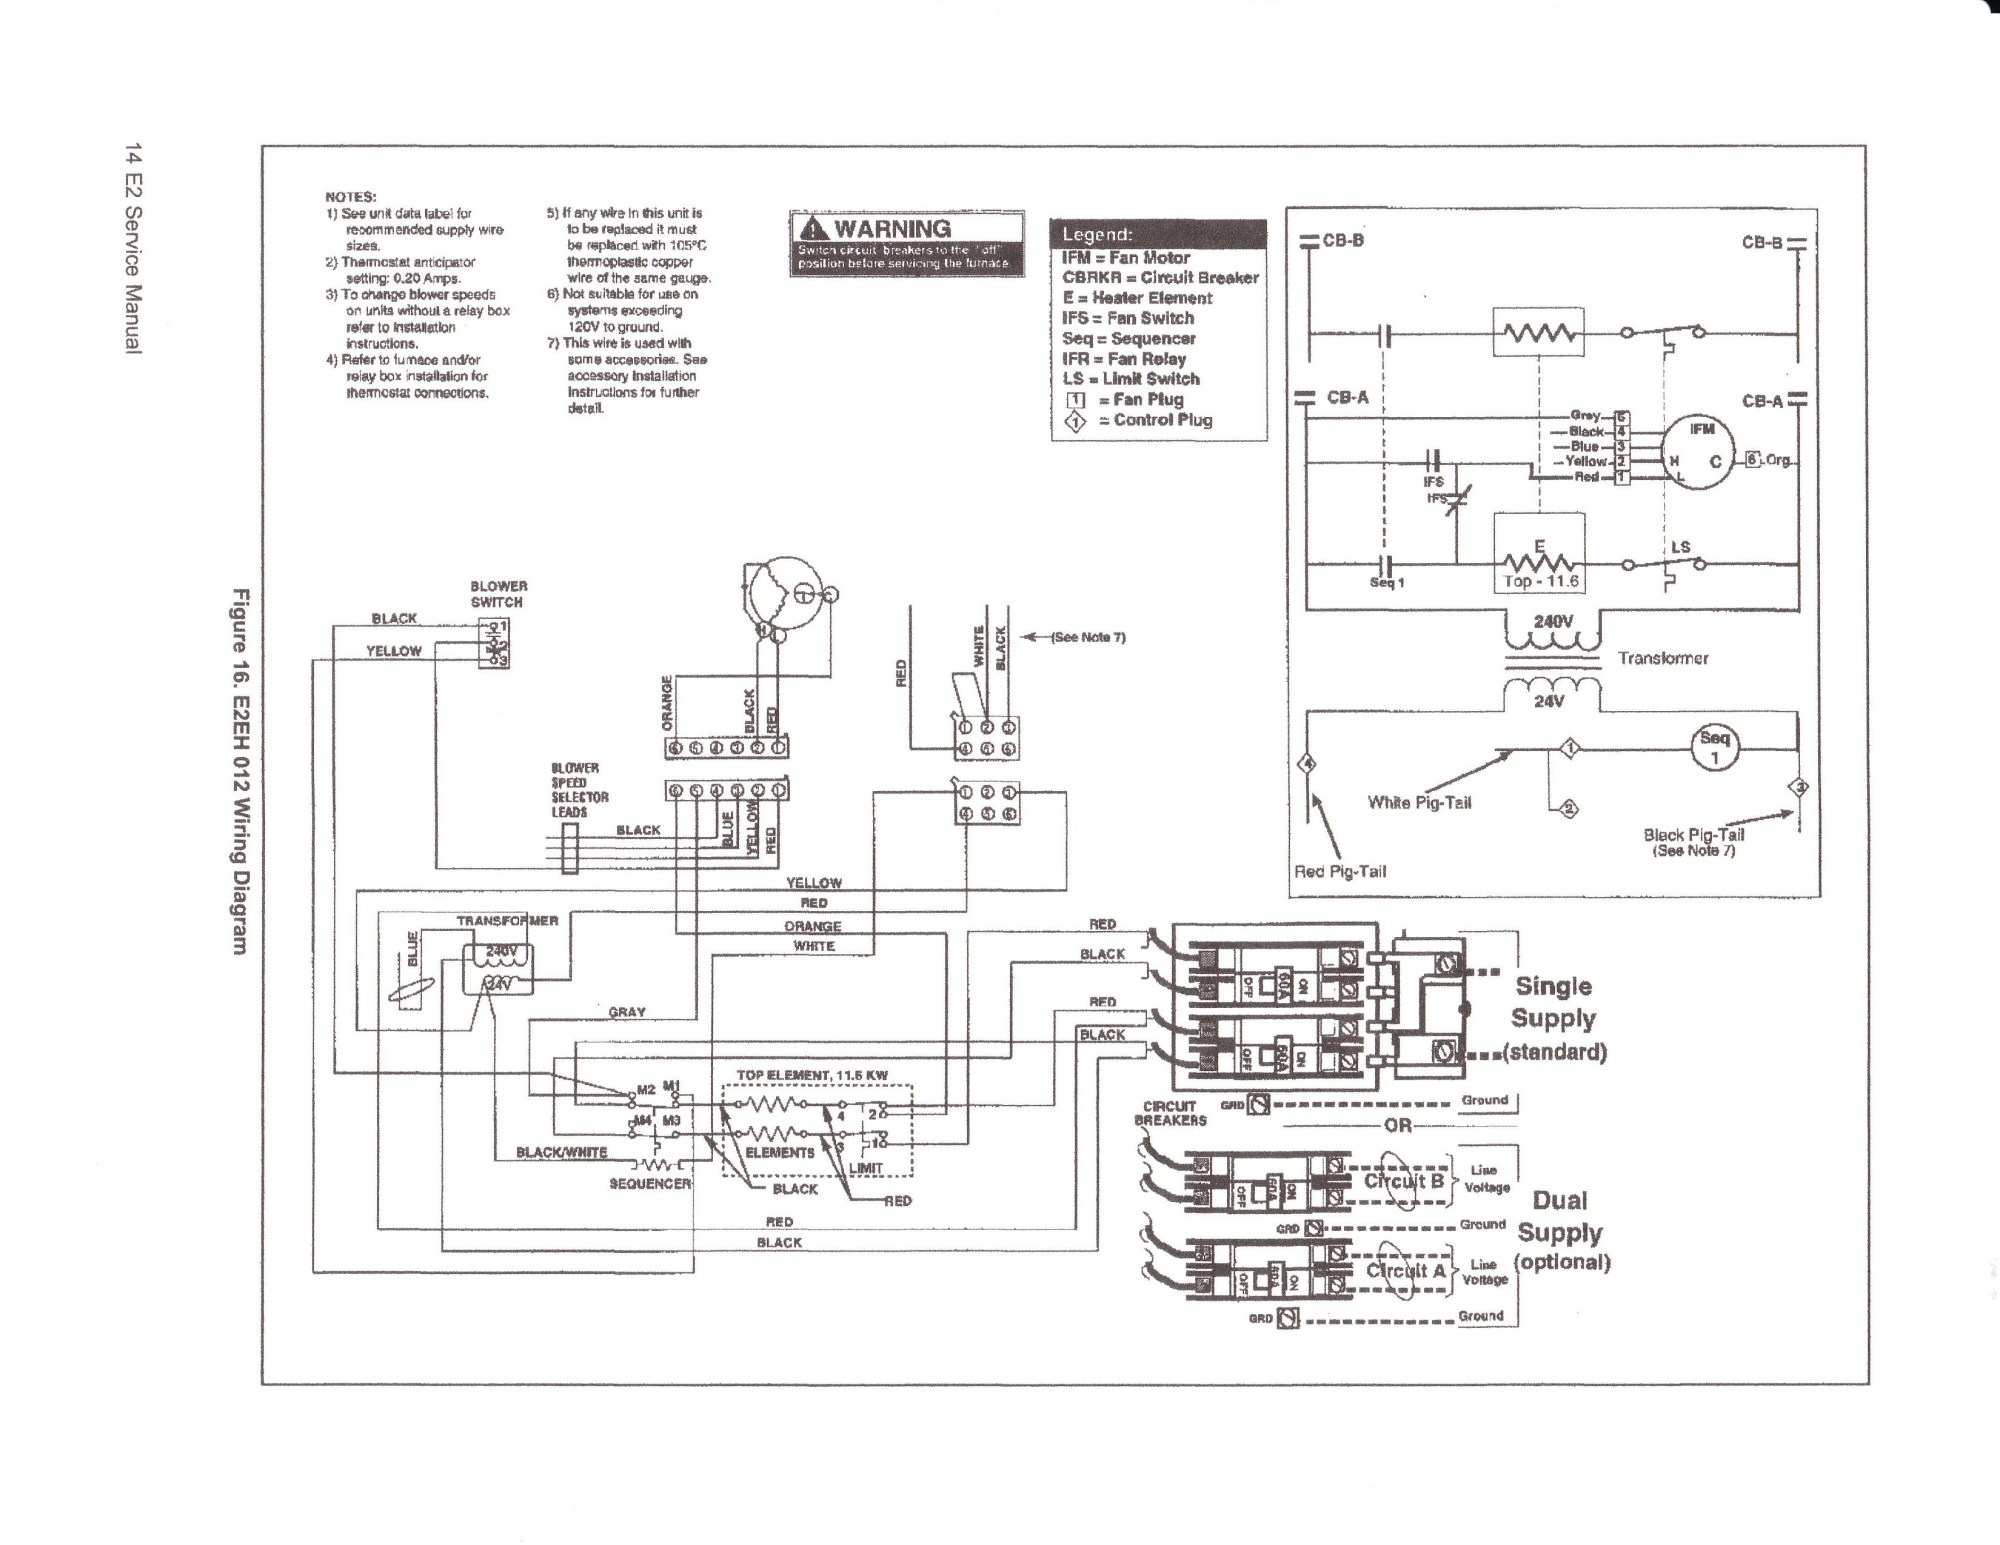 hight resolution of rheem 41 20804 15 thermostat wiring diagram rheem air handler wiring diagram wire center